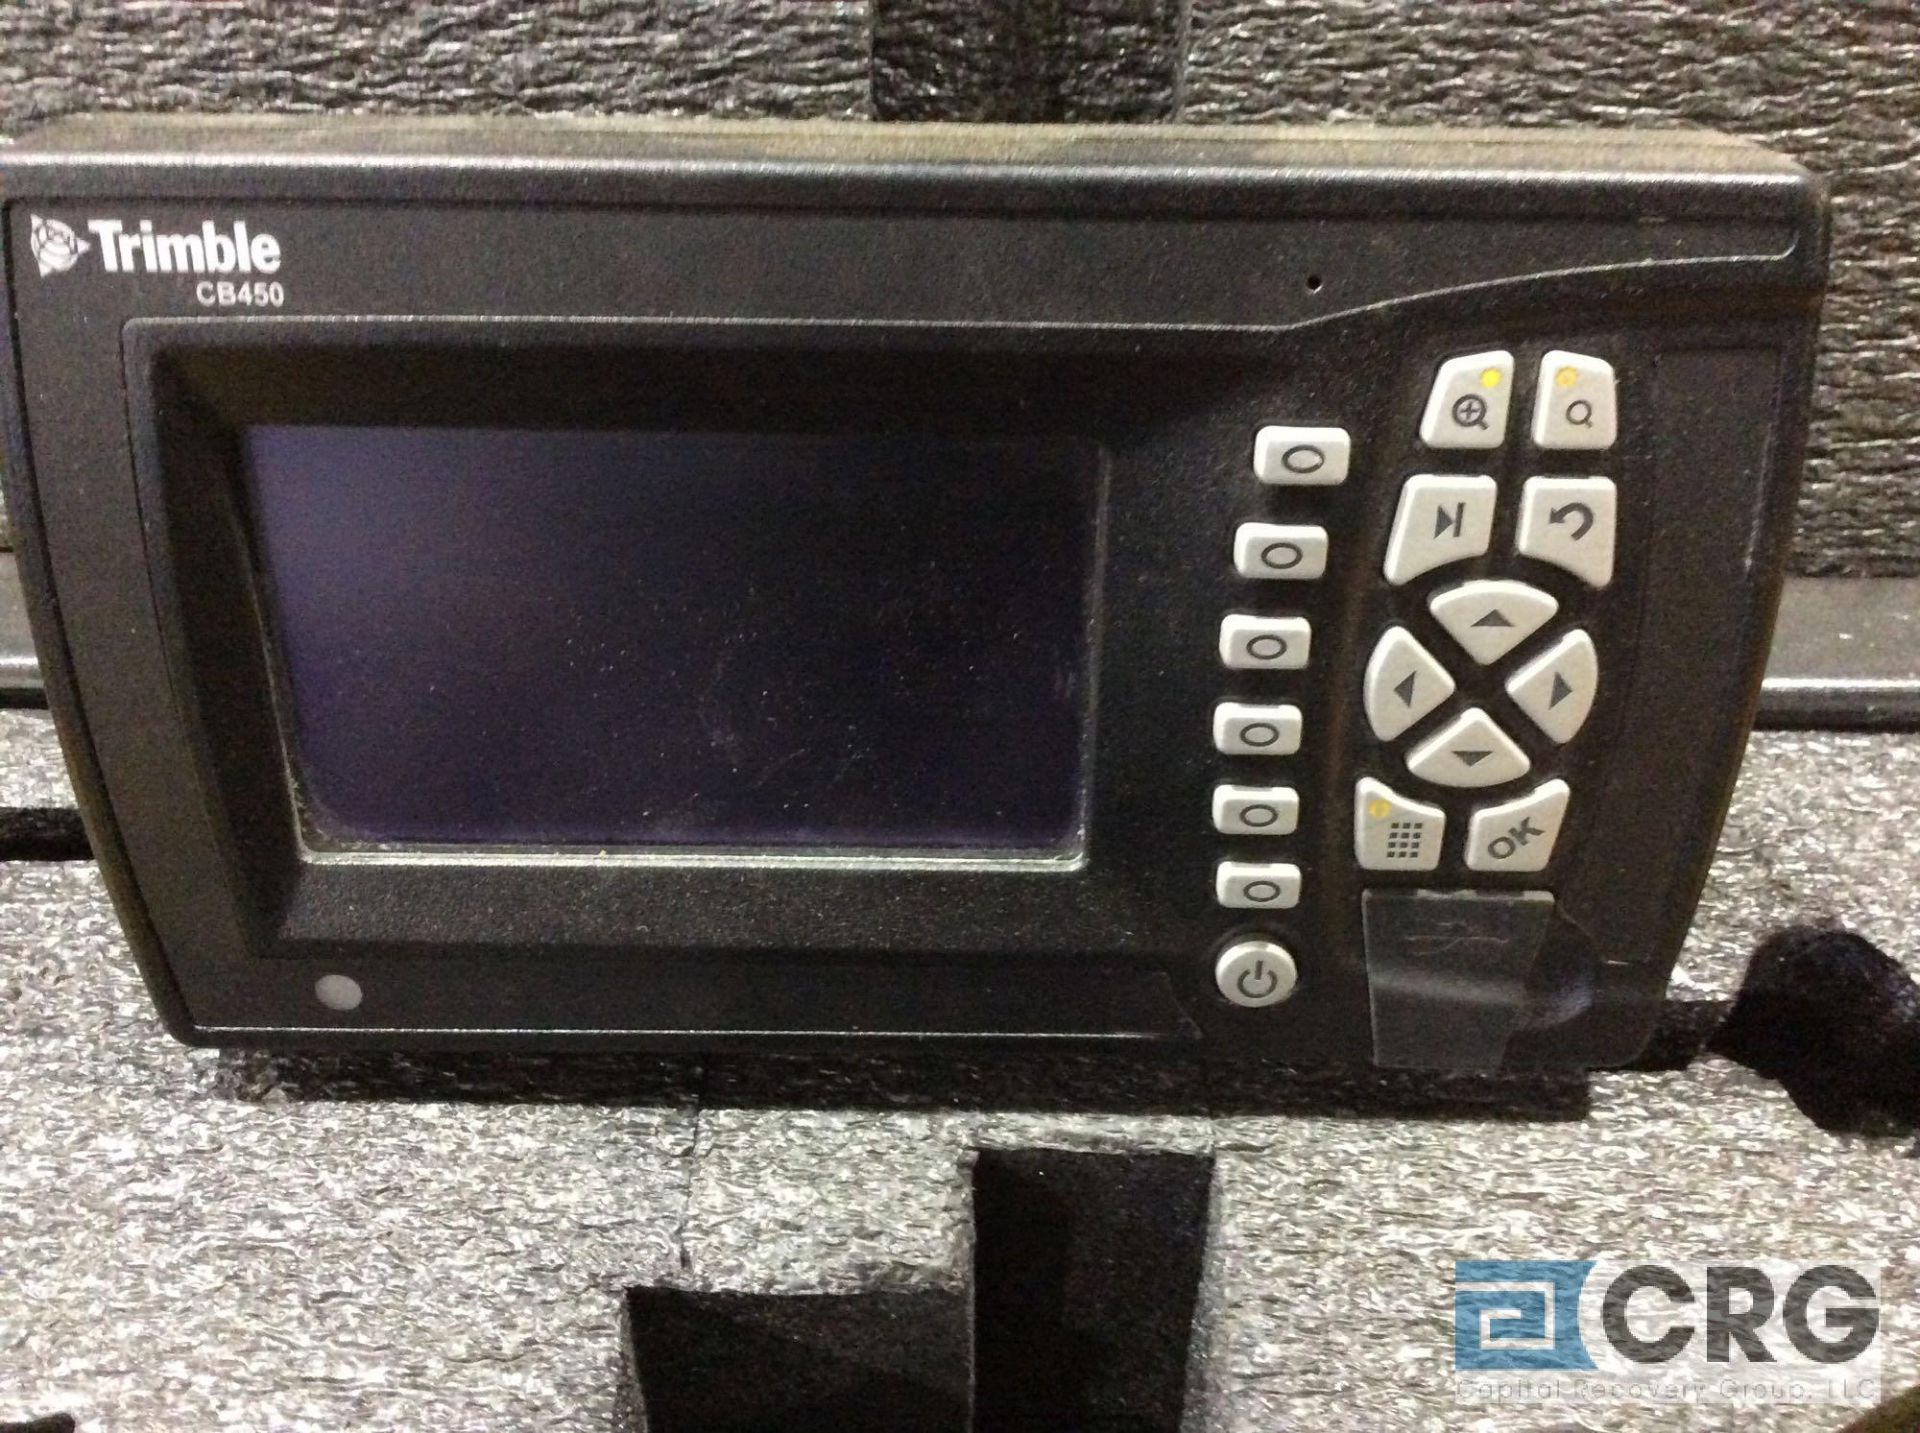 Lot 183 - Trimble GPS (2) LR410 receiver with digital display mn CB450 with case and inside/outside bulldozer